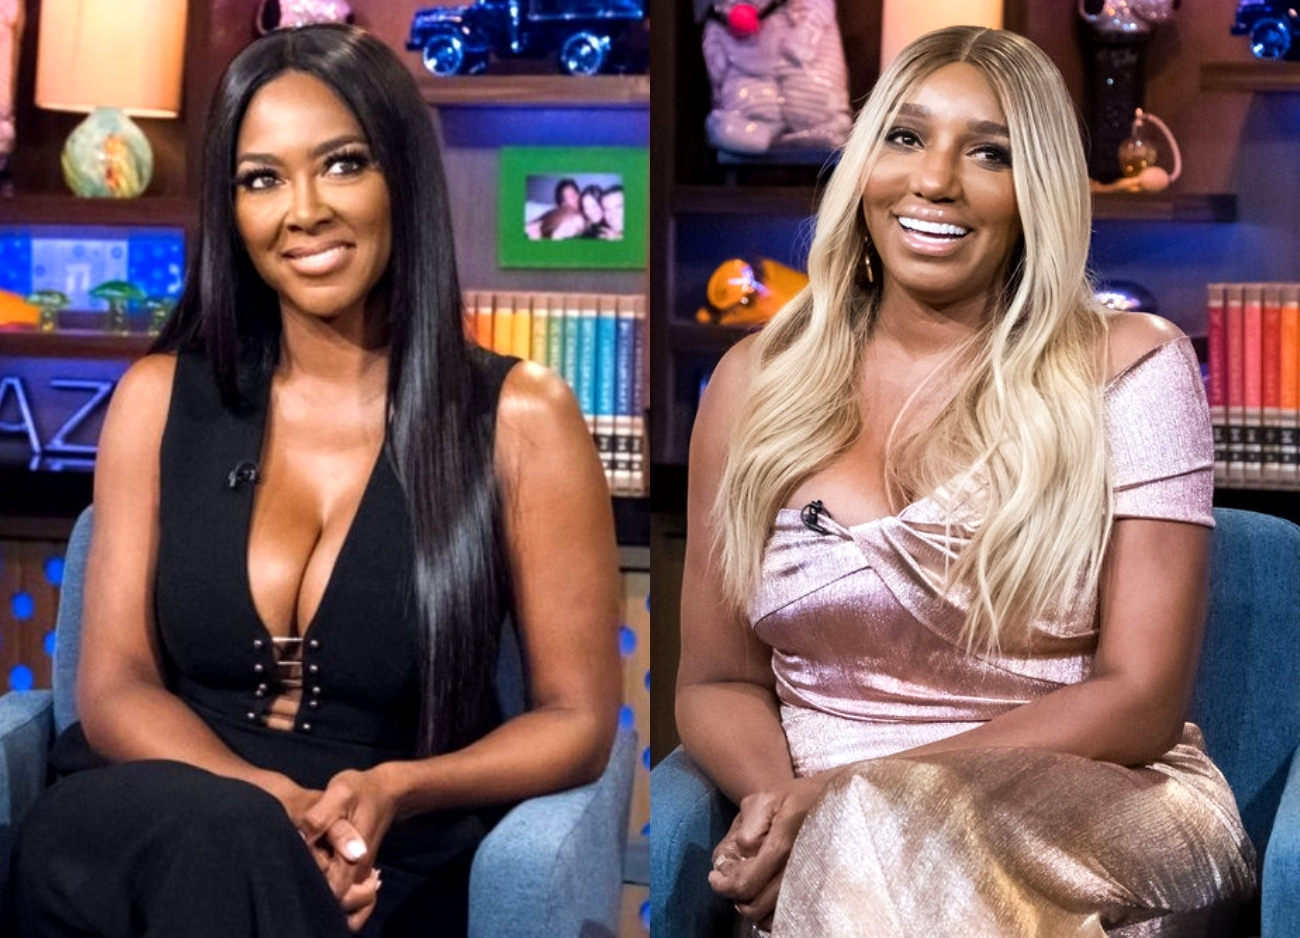 NeNe Leakes Addresses The Most Recent RHOA Episode On Her YouTube Channel - See The Video